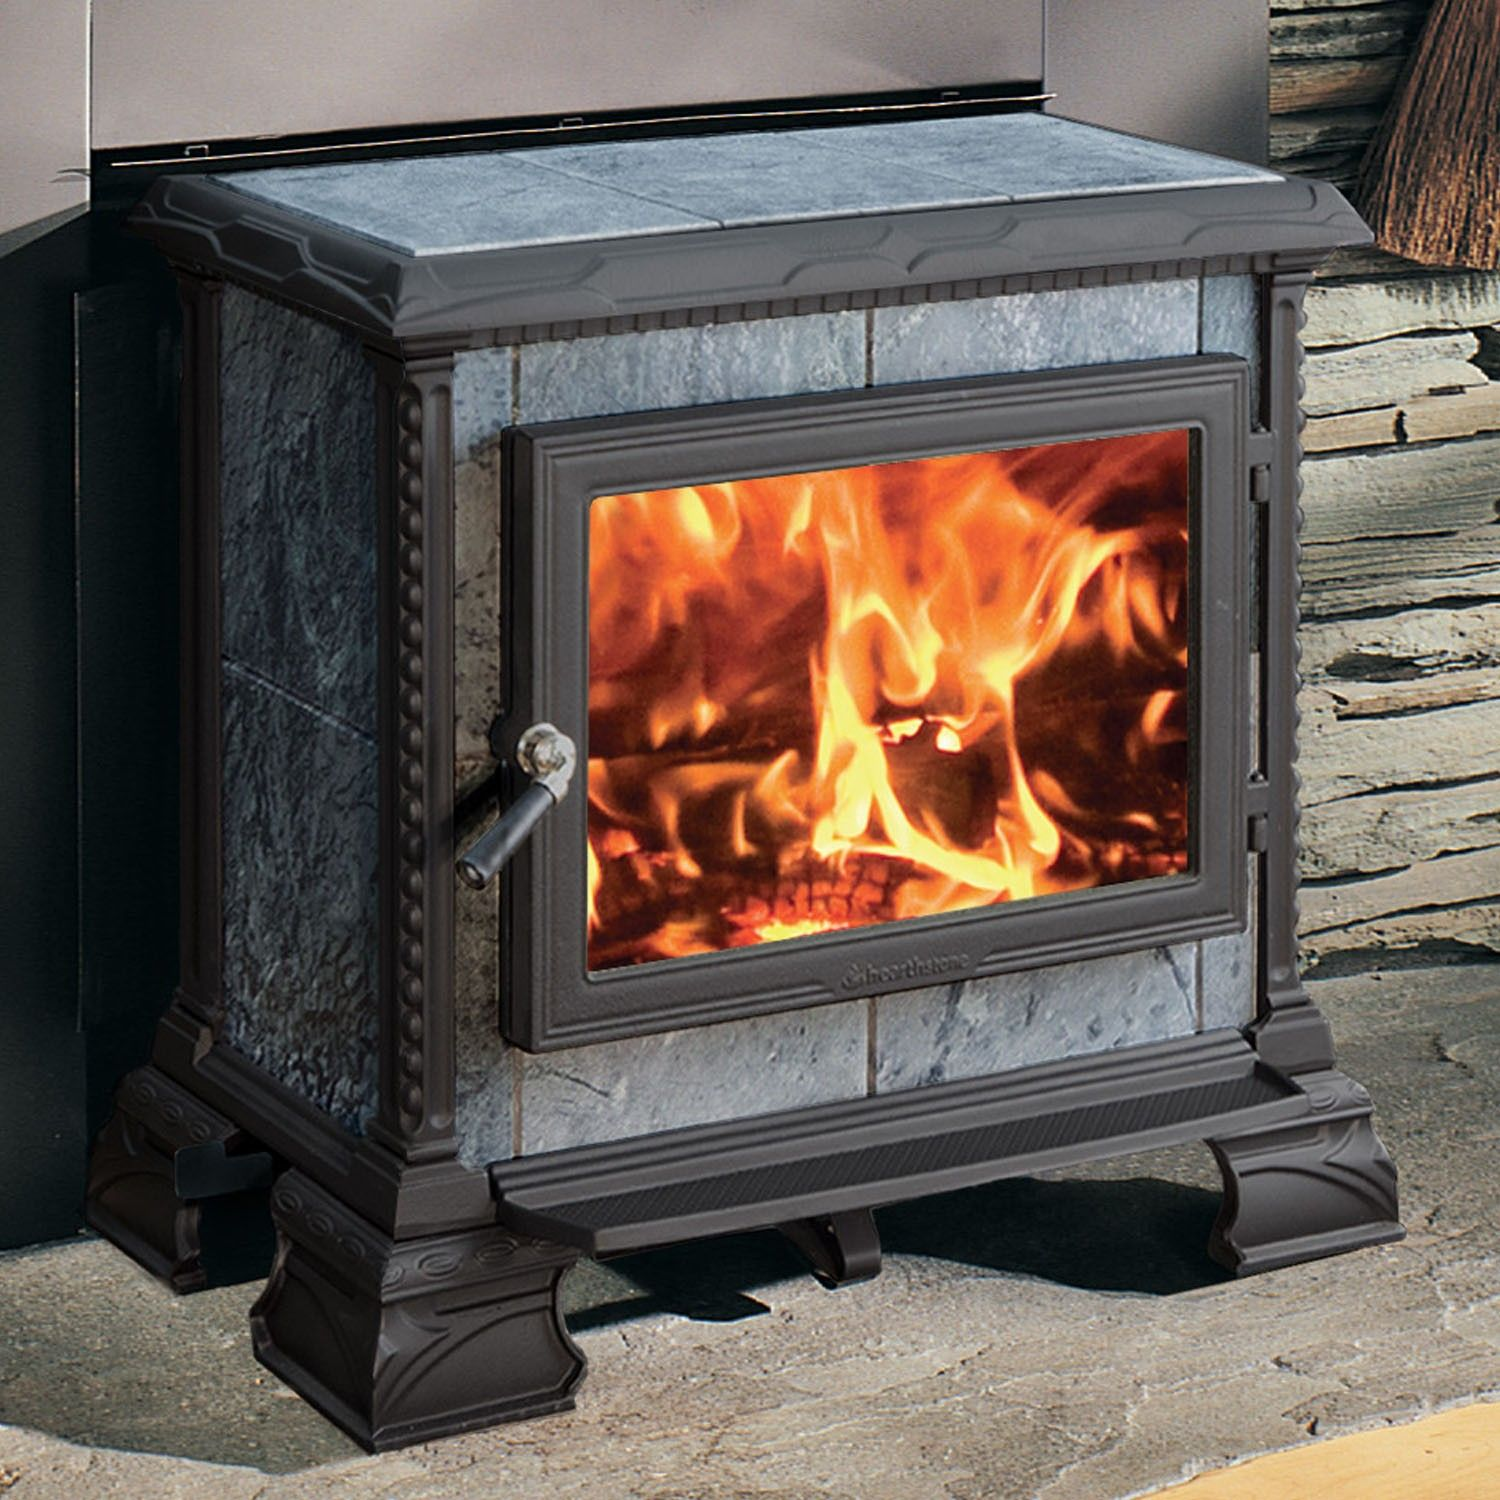 tula 8190 wood stove in charcoal by hearthstone heats up to 1200